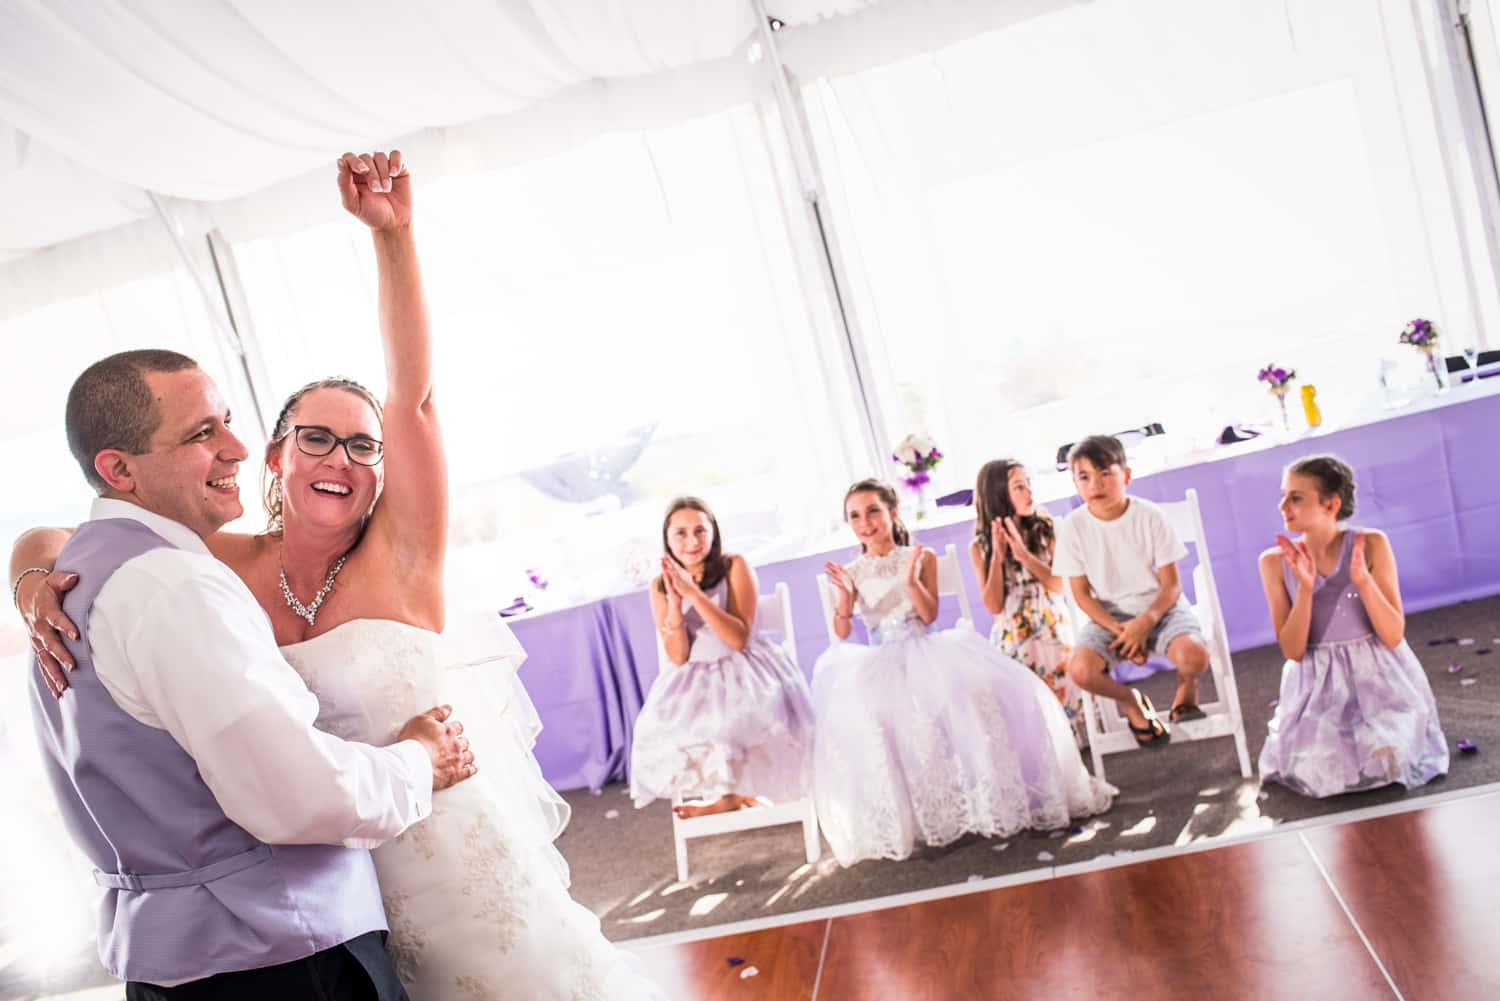 Bride fist pumping after her wedding